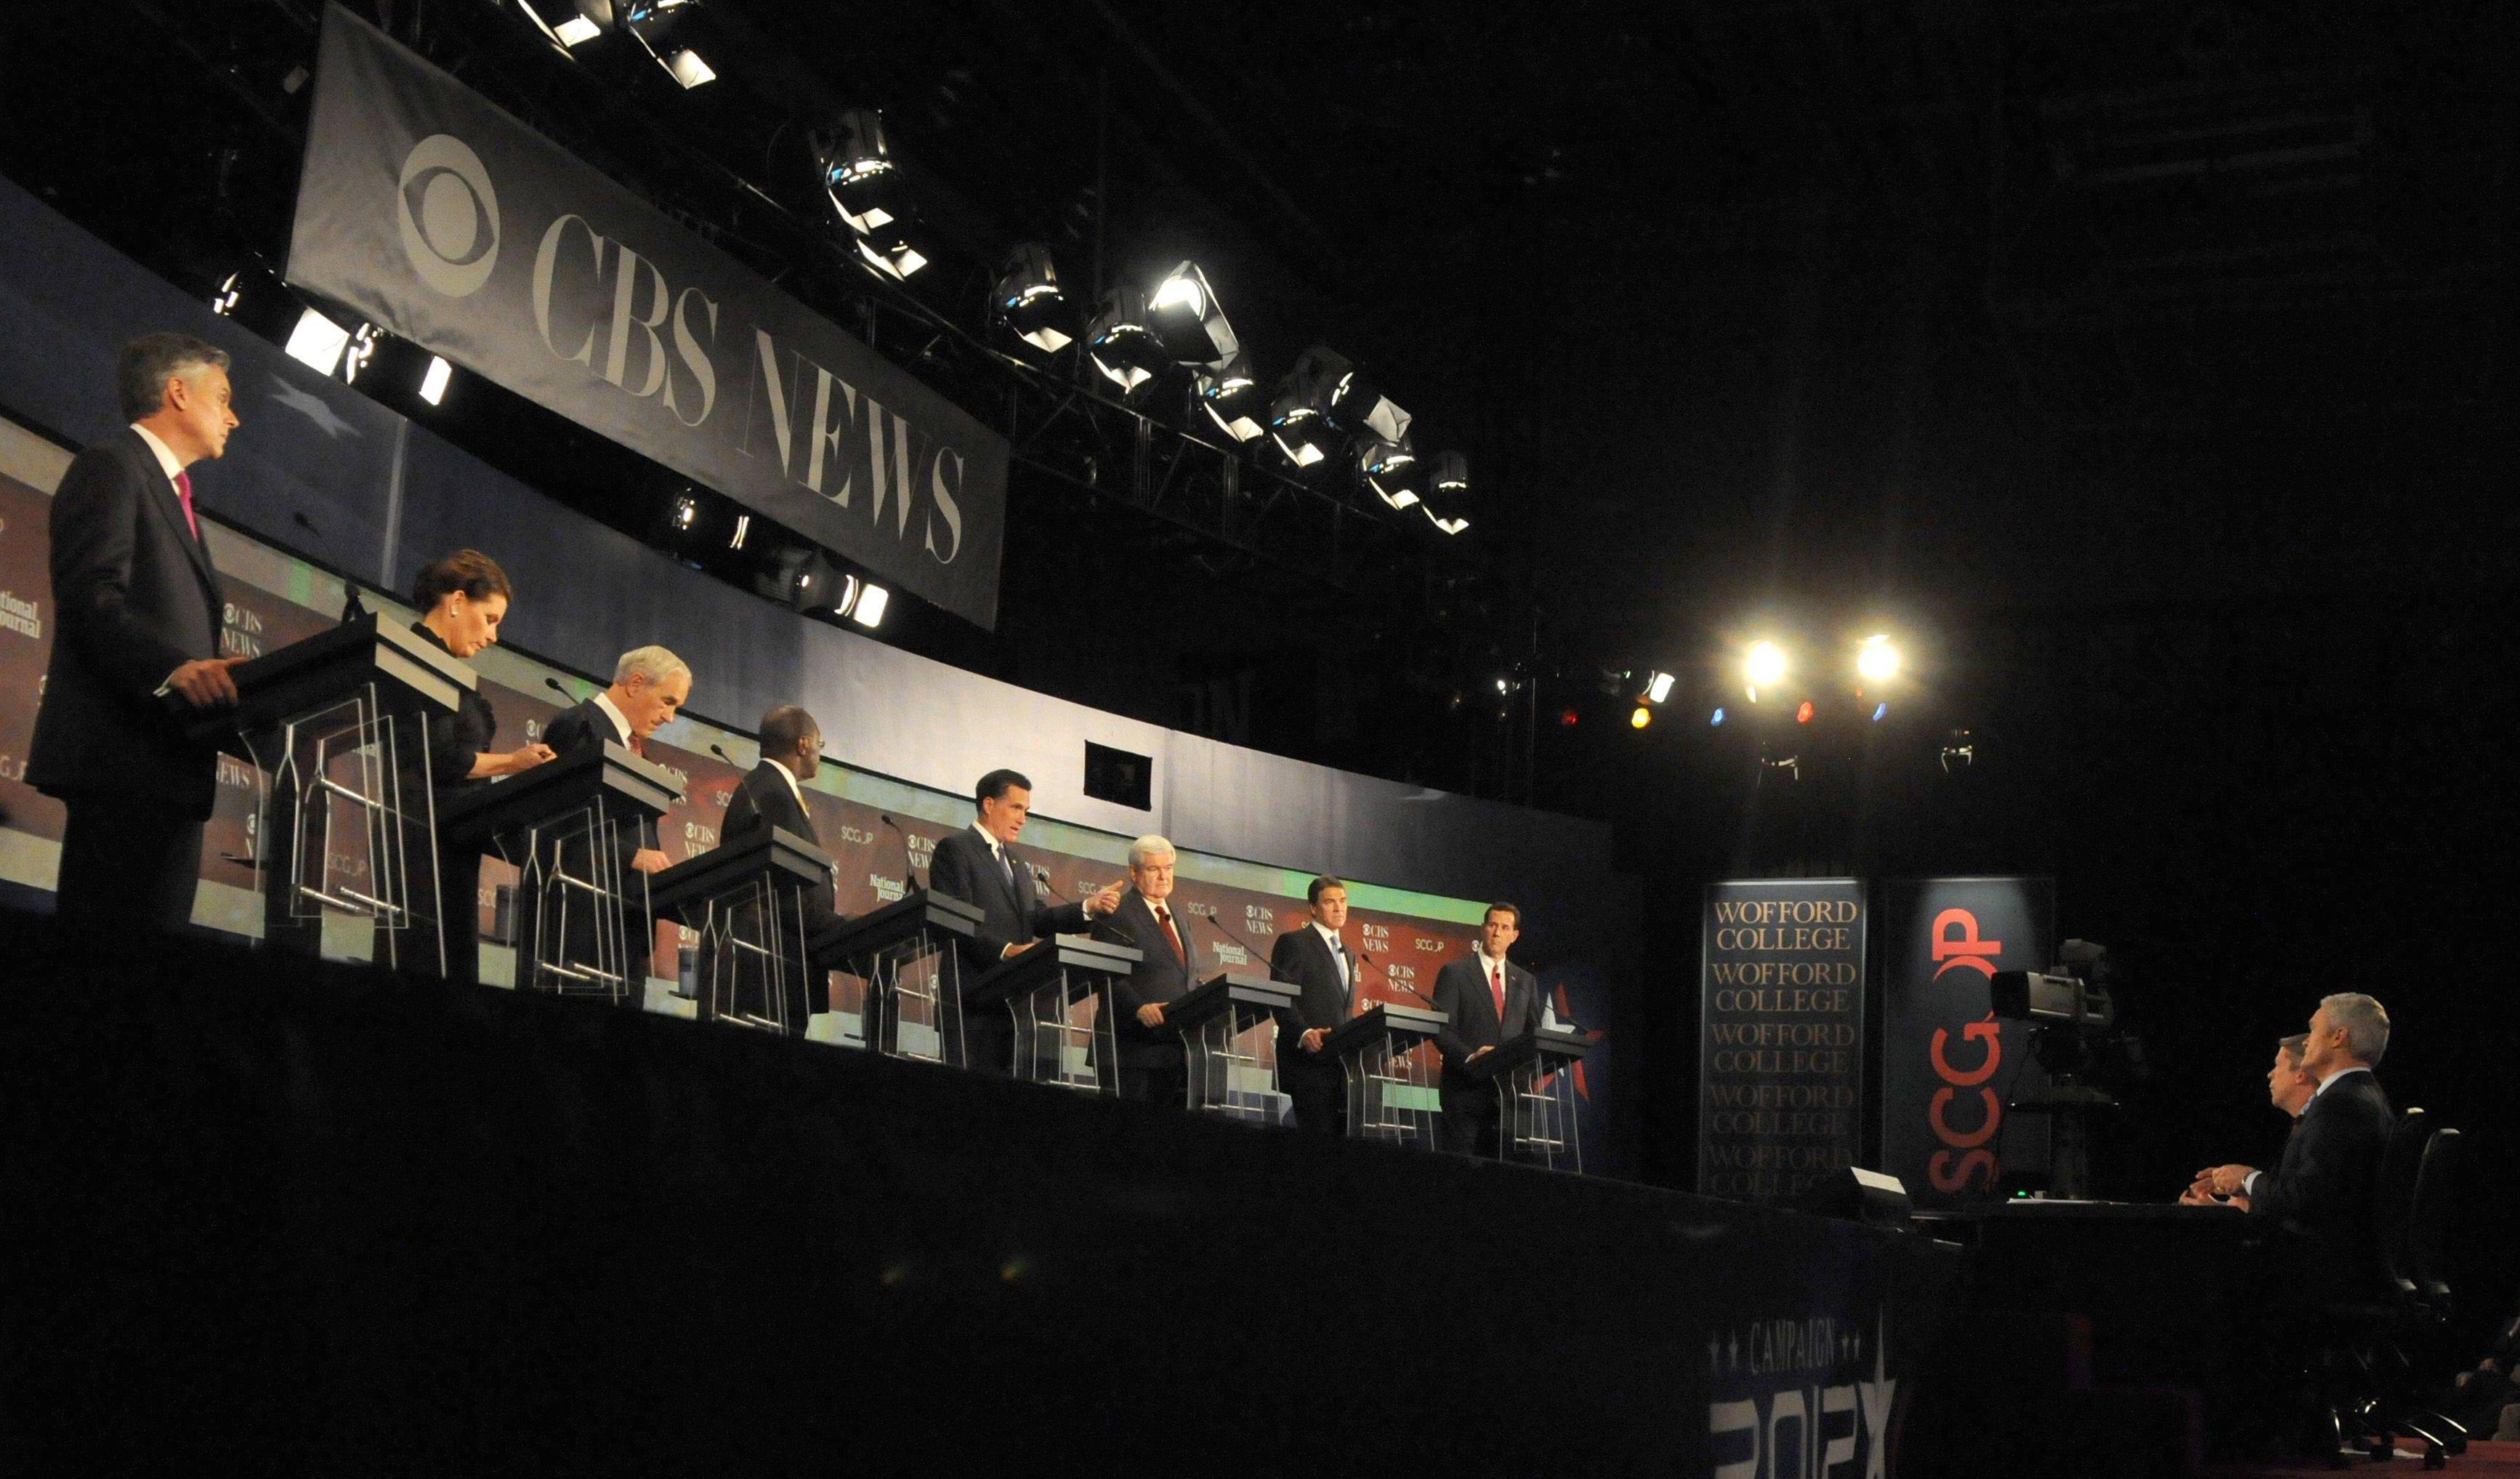 Networks walk a tightrope over crowded debates